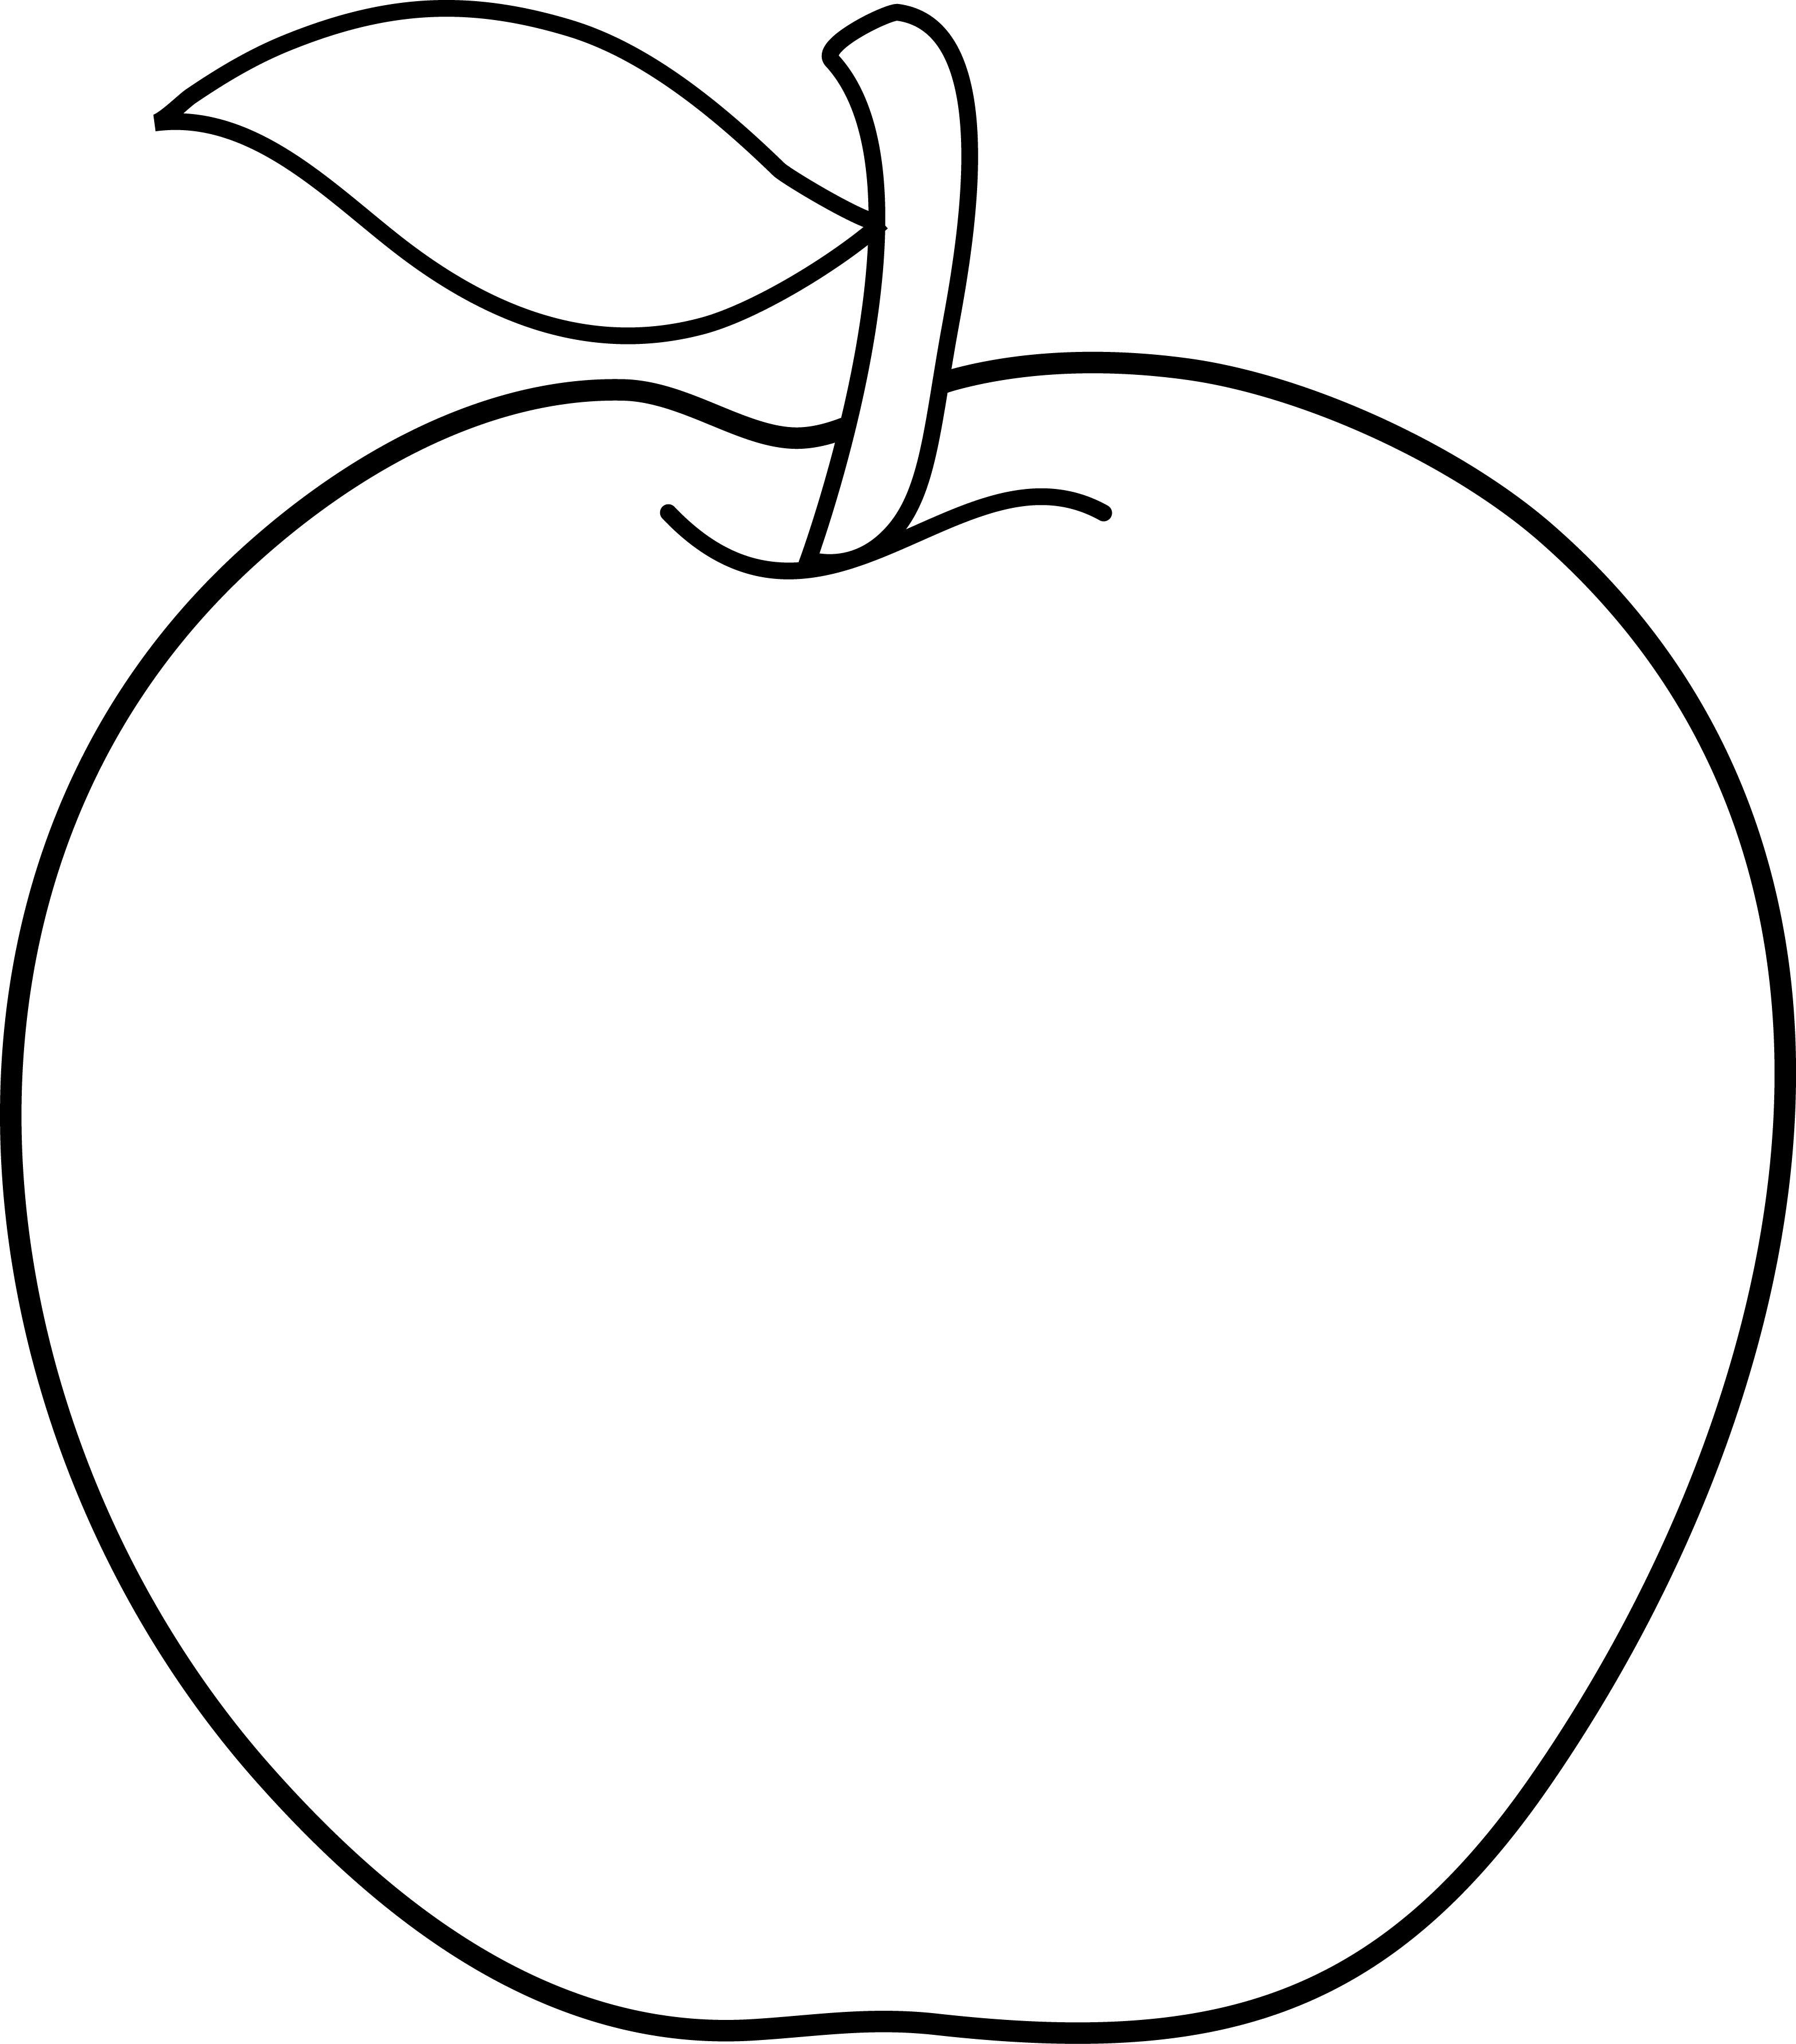 Apple logo outline download. Free clipart for commercial use open half appl